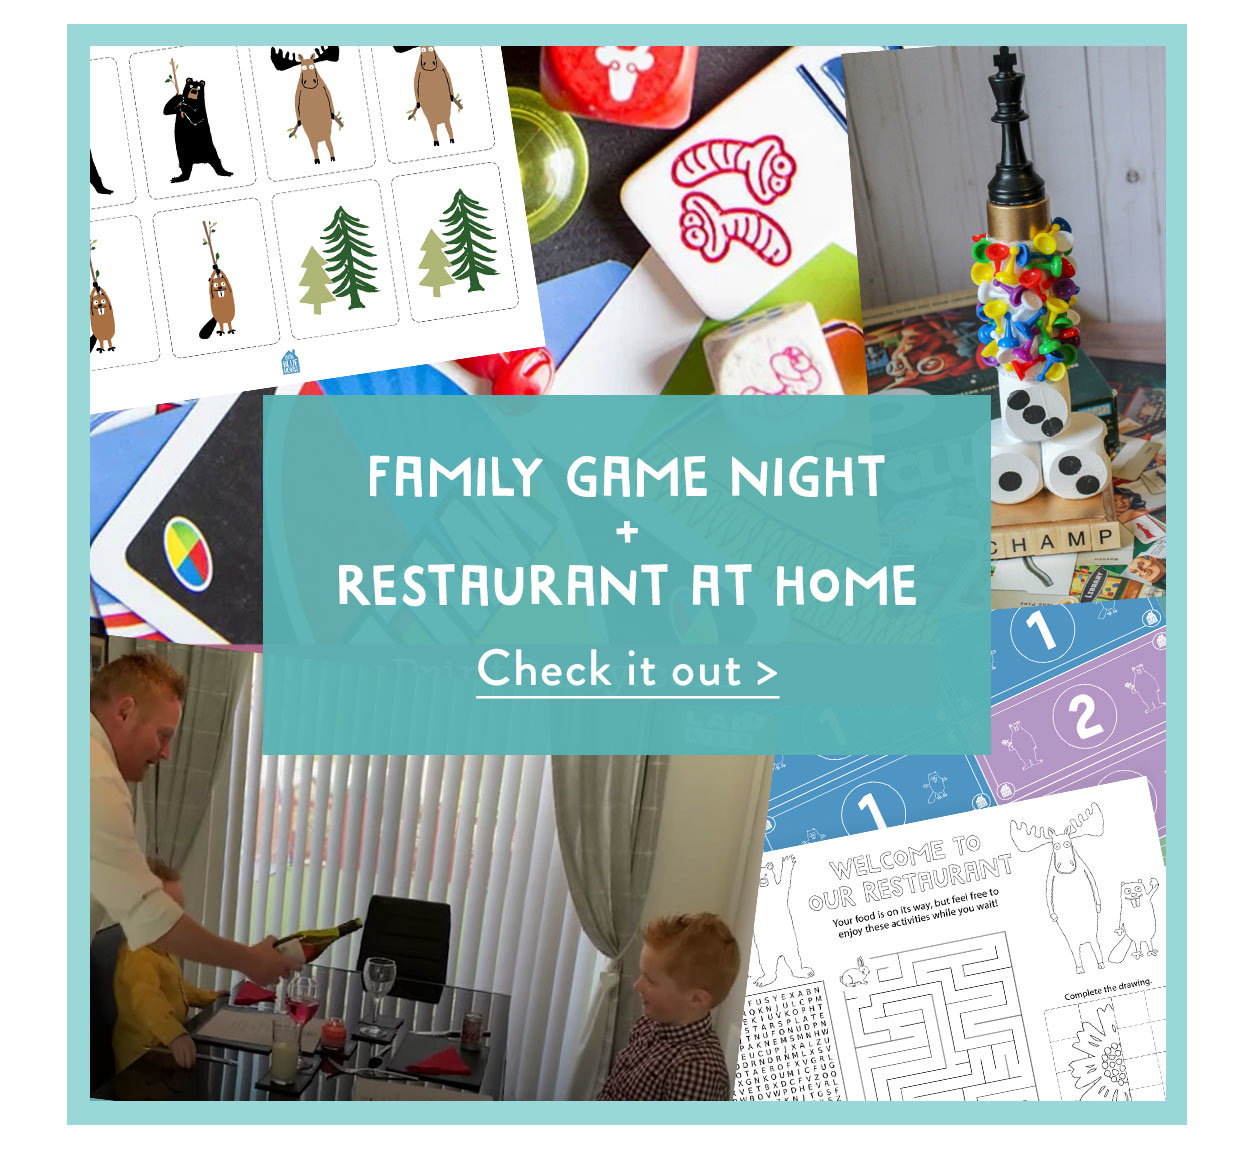 Family game night + Restaurant at home